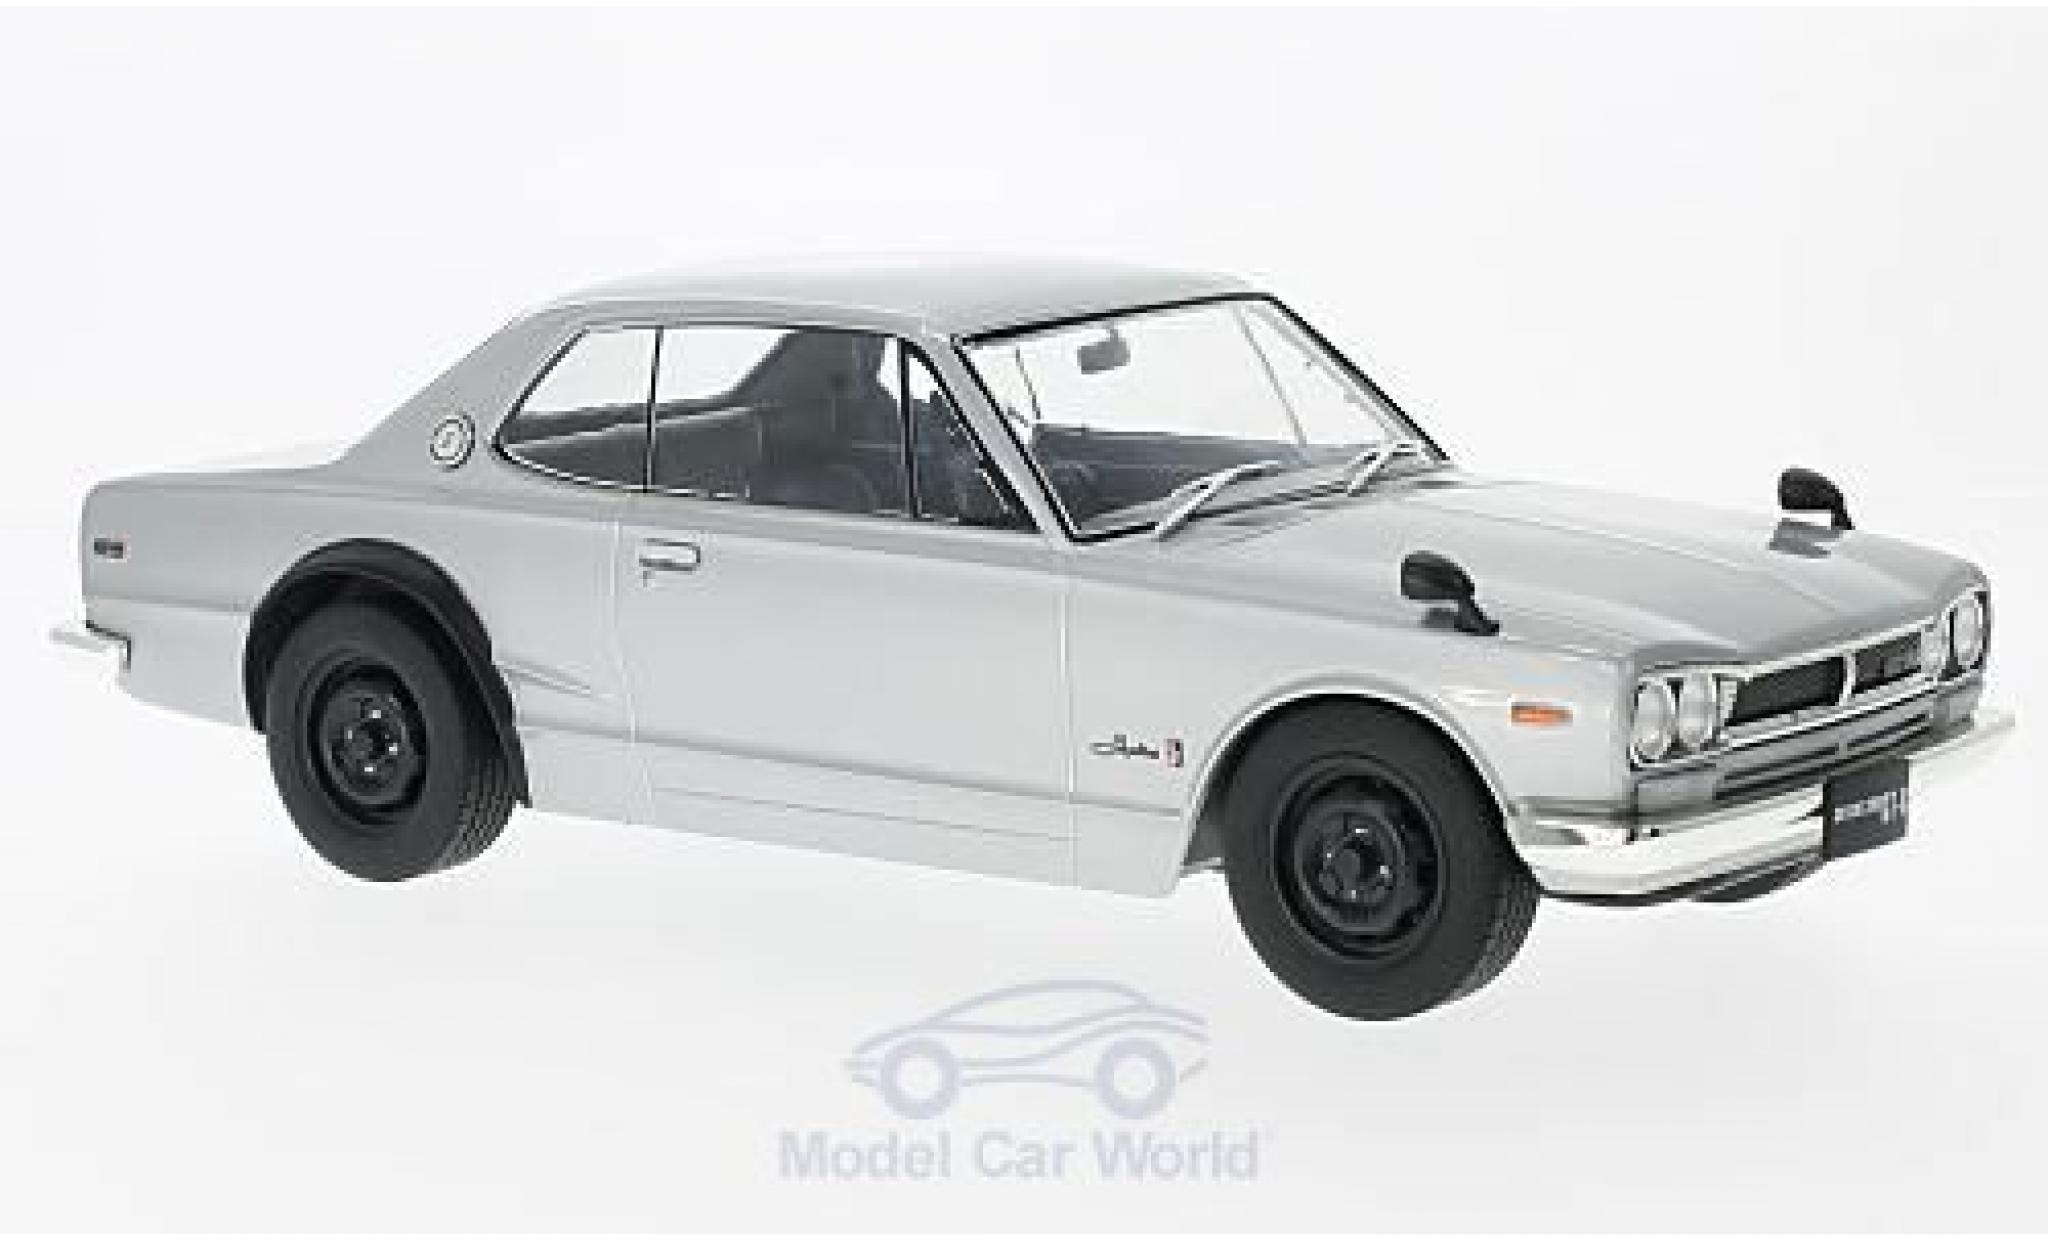 Nissan Skyline 1/18 Triple 9 Collection GT-R KPGC10 grise RHD